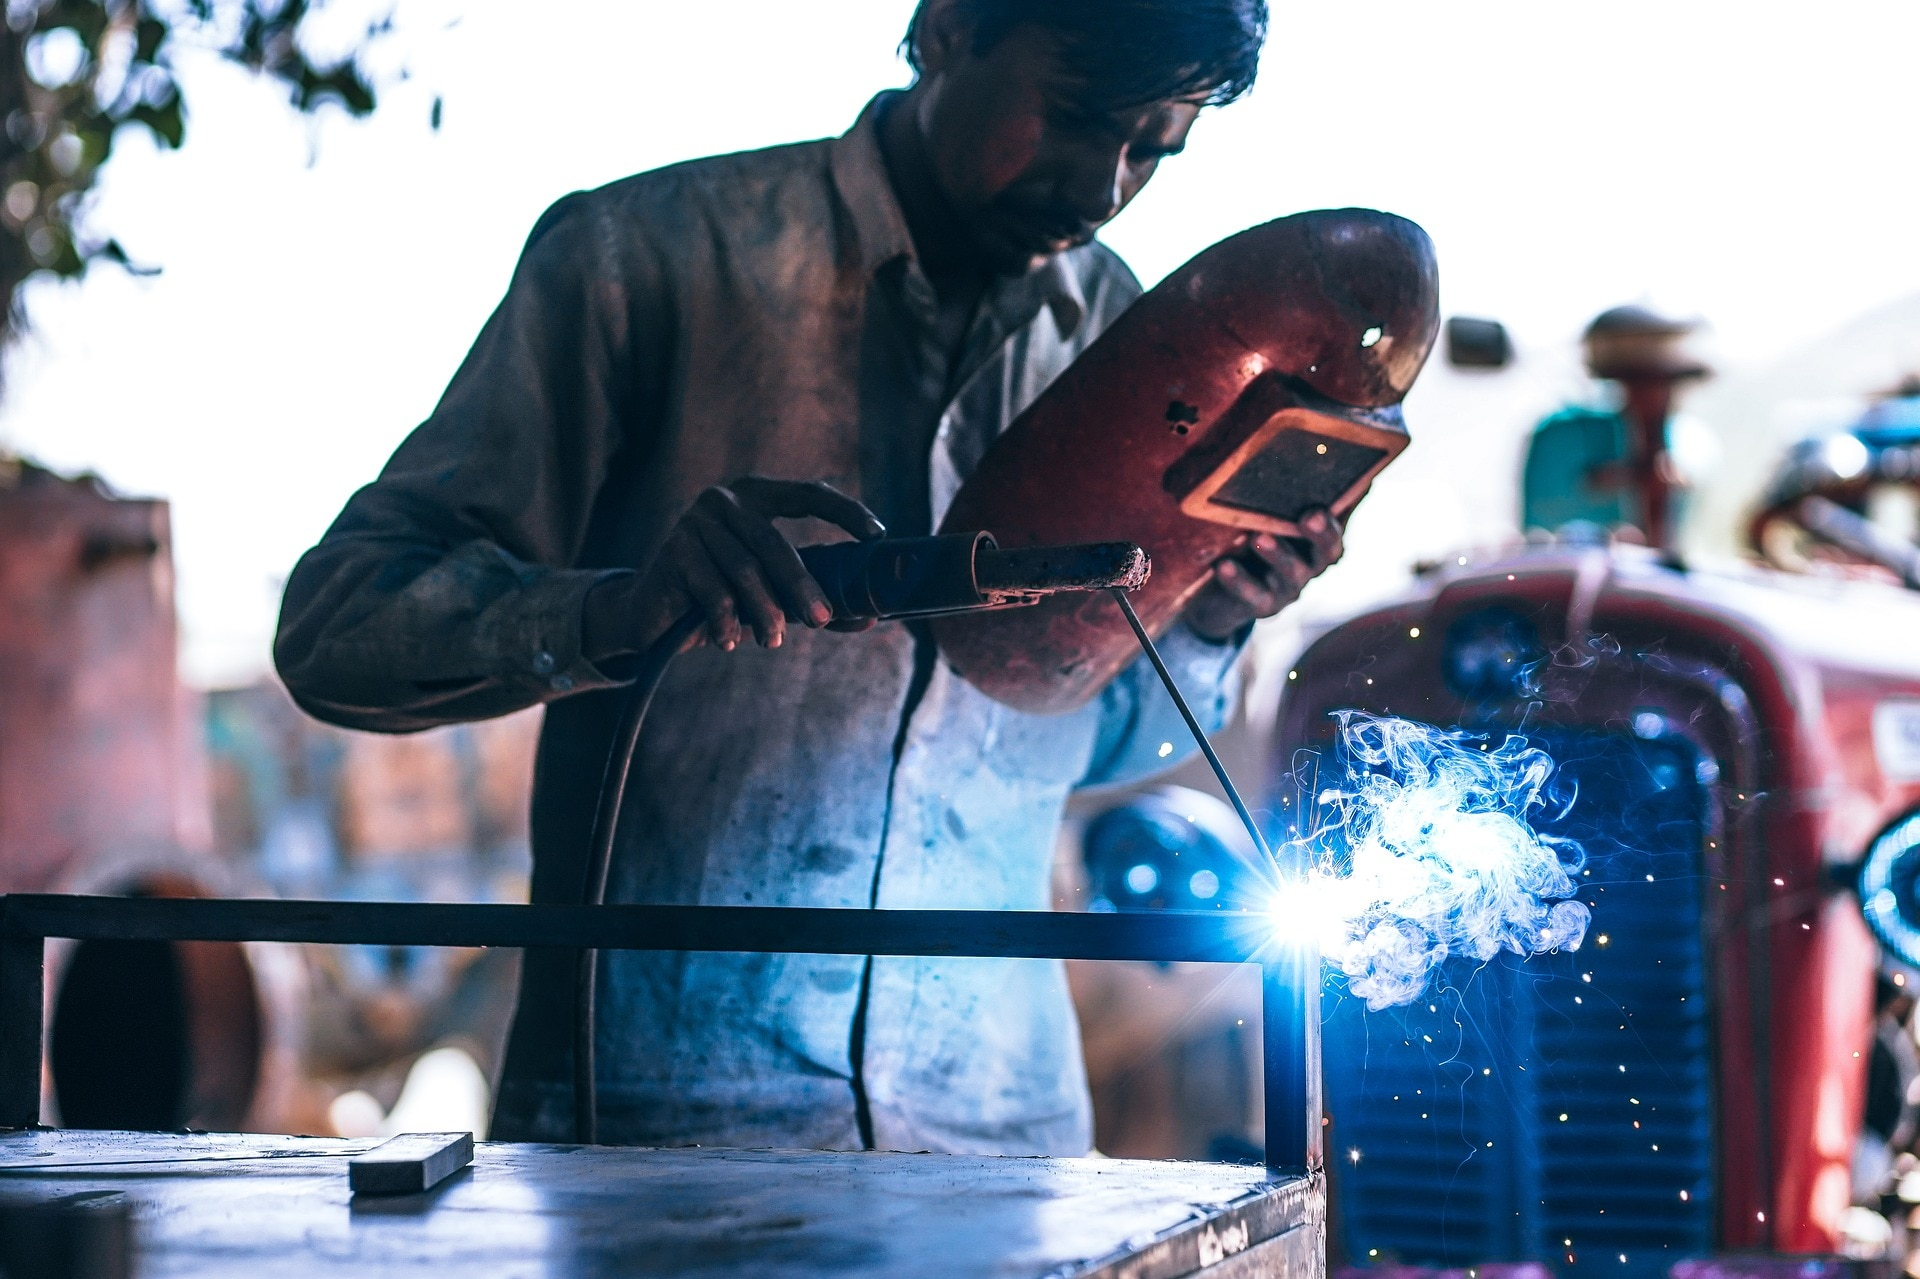 9. India's Industrial Production Declines: In signs of continuing weakness in the economy, India's factory output shrank to the lowest level in eight years as all three broad-based sectors of capital goods production, consumer durables, and infrastructure and construction goods contracted. The Index of Industrial Production (IIP) fell 4.3 percent in September as compared to a contraction by 1.4 percent in August 2019 and a growth of 4.6 percent in factory output in the same month a year back, data released by the Ministry of Statistics showed on Monday. The second straight month of contraction has taken the IIP to its lowest level since it shrank by 5 percent in October 2011. On a quarterly basis, the second quarter of 2019-20 fiscal (July-September) saw IIP contracting by 0.4 percent (Q1 3 percent expansion and 5.3 percent growth in Q2 FY19). Image: Reuters)